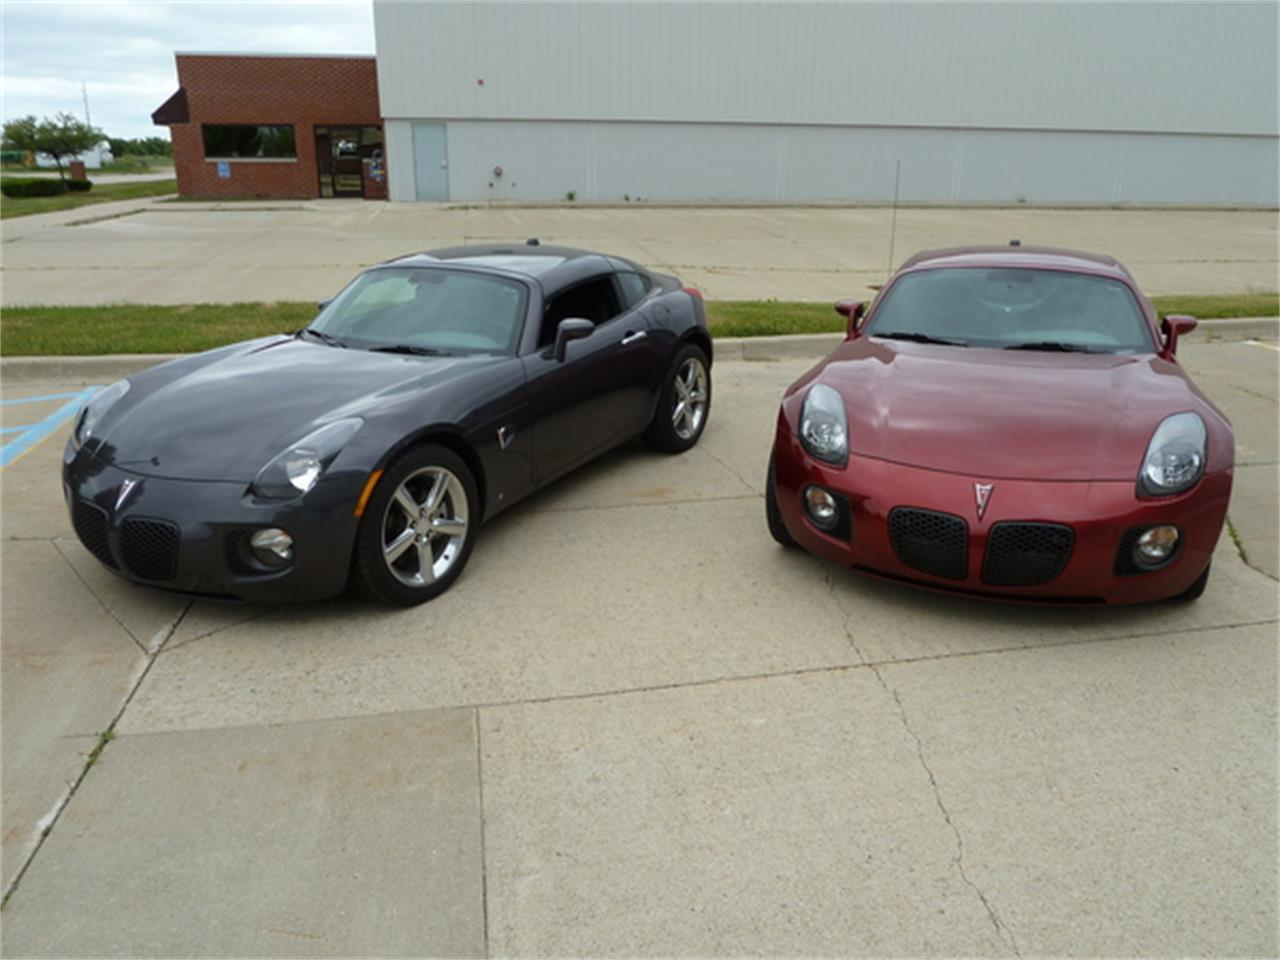 Large Picture of '10 Pontiac Solstice located in Fort Myers/ Macomb, MI Florida - $77,900.00 - JXMD